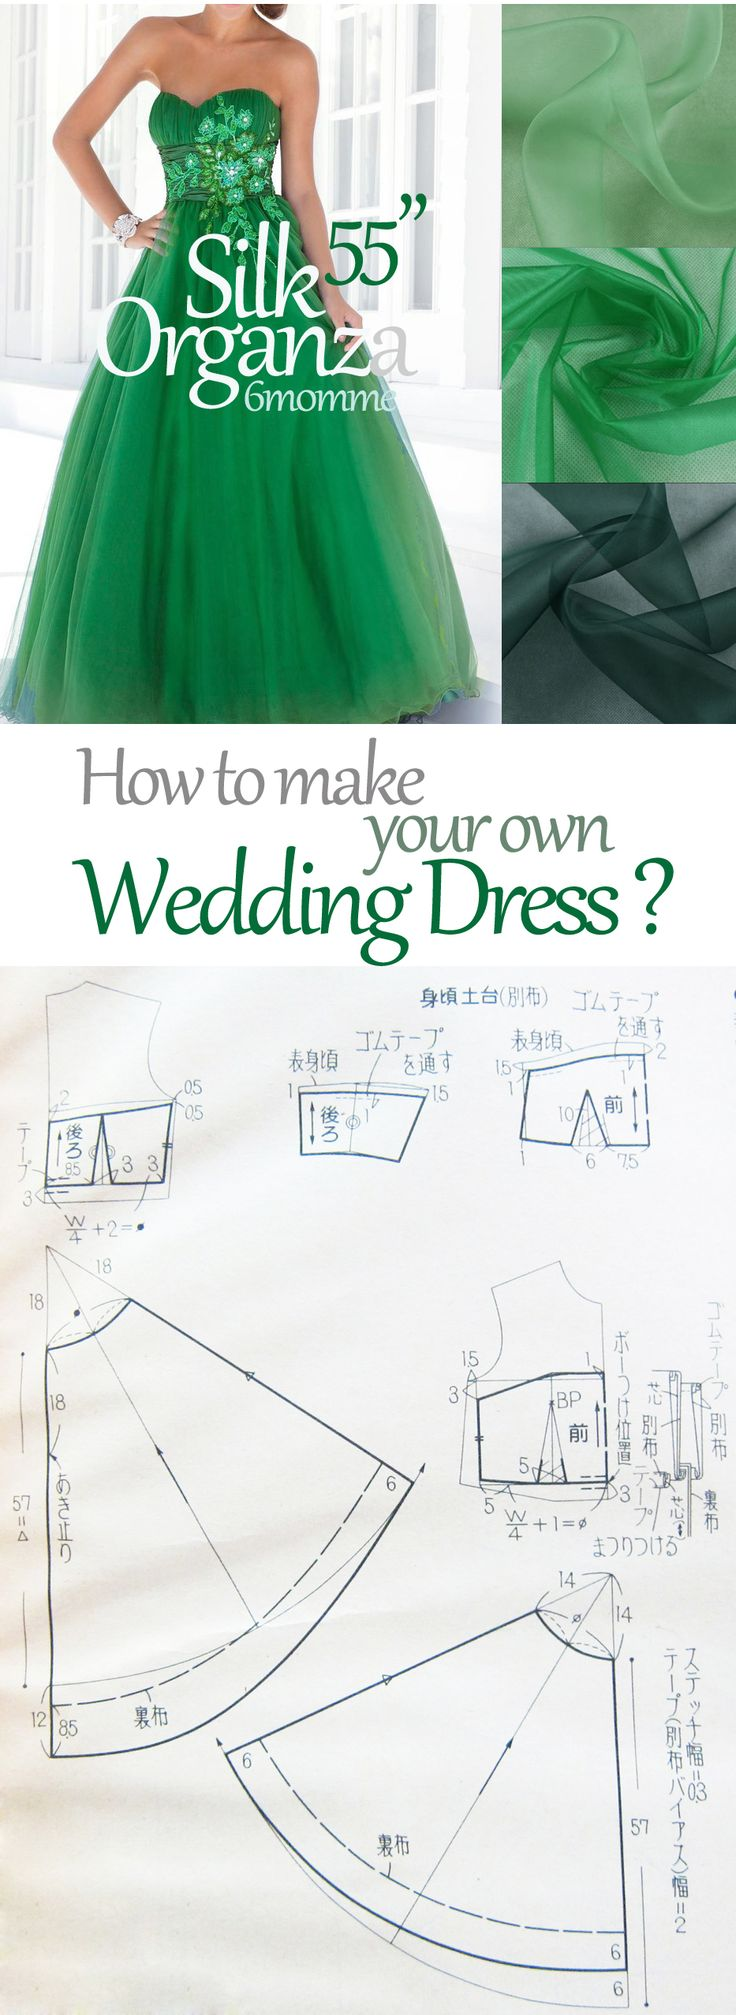 comment coudre une robe de soirée? DIY wedding dress pattern. Free wedding dress pattern.